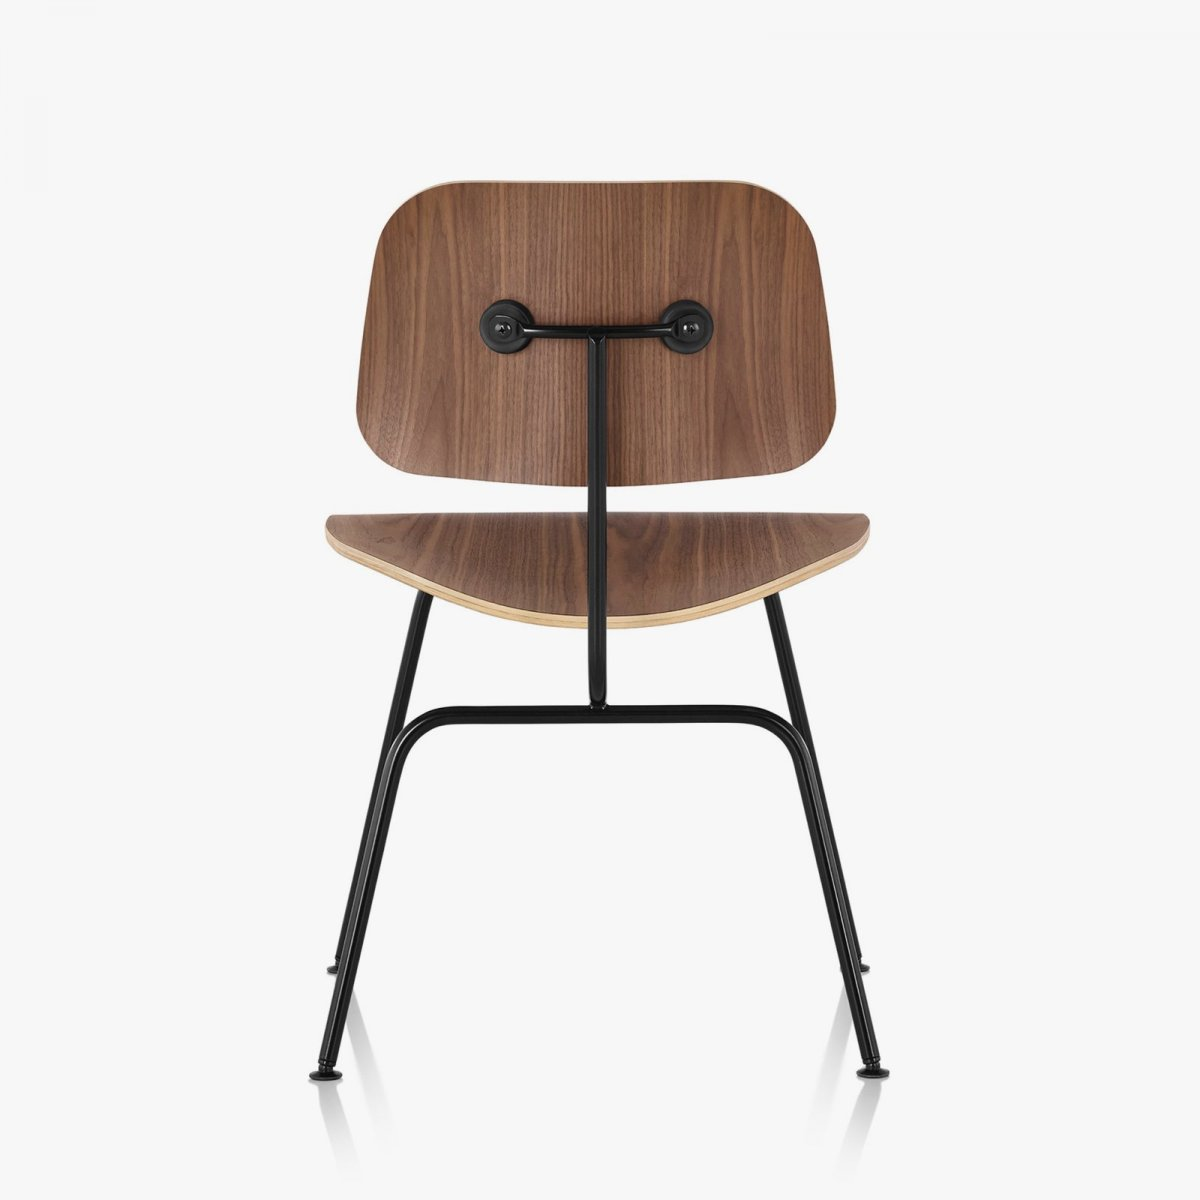 Eames Molded Plywood Dining Chair with Metal Base, walnut seat and back, black base, back view.